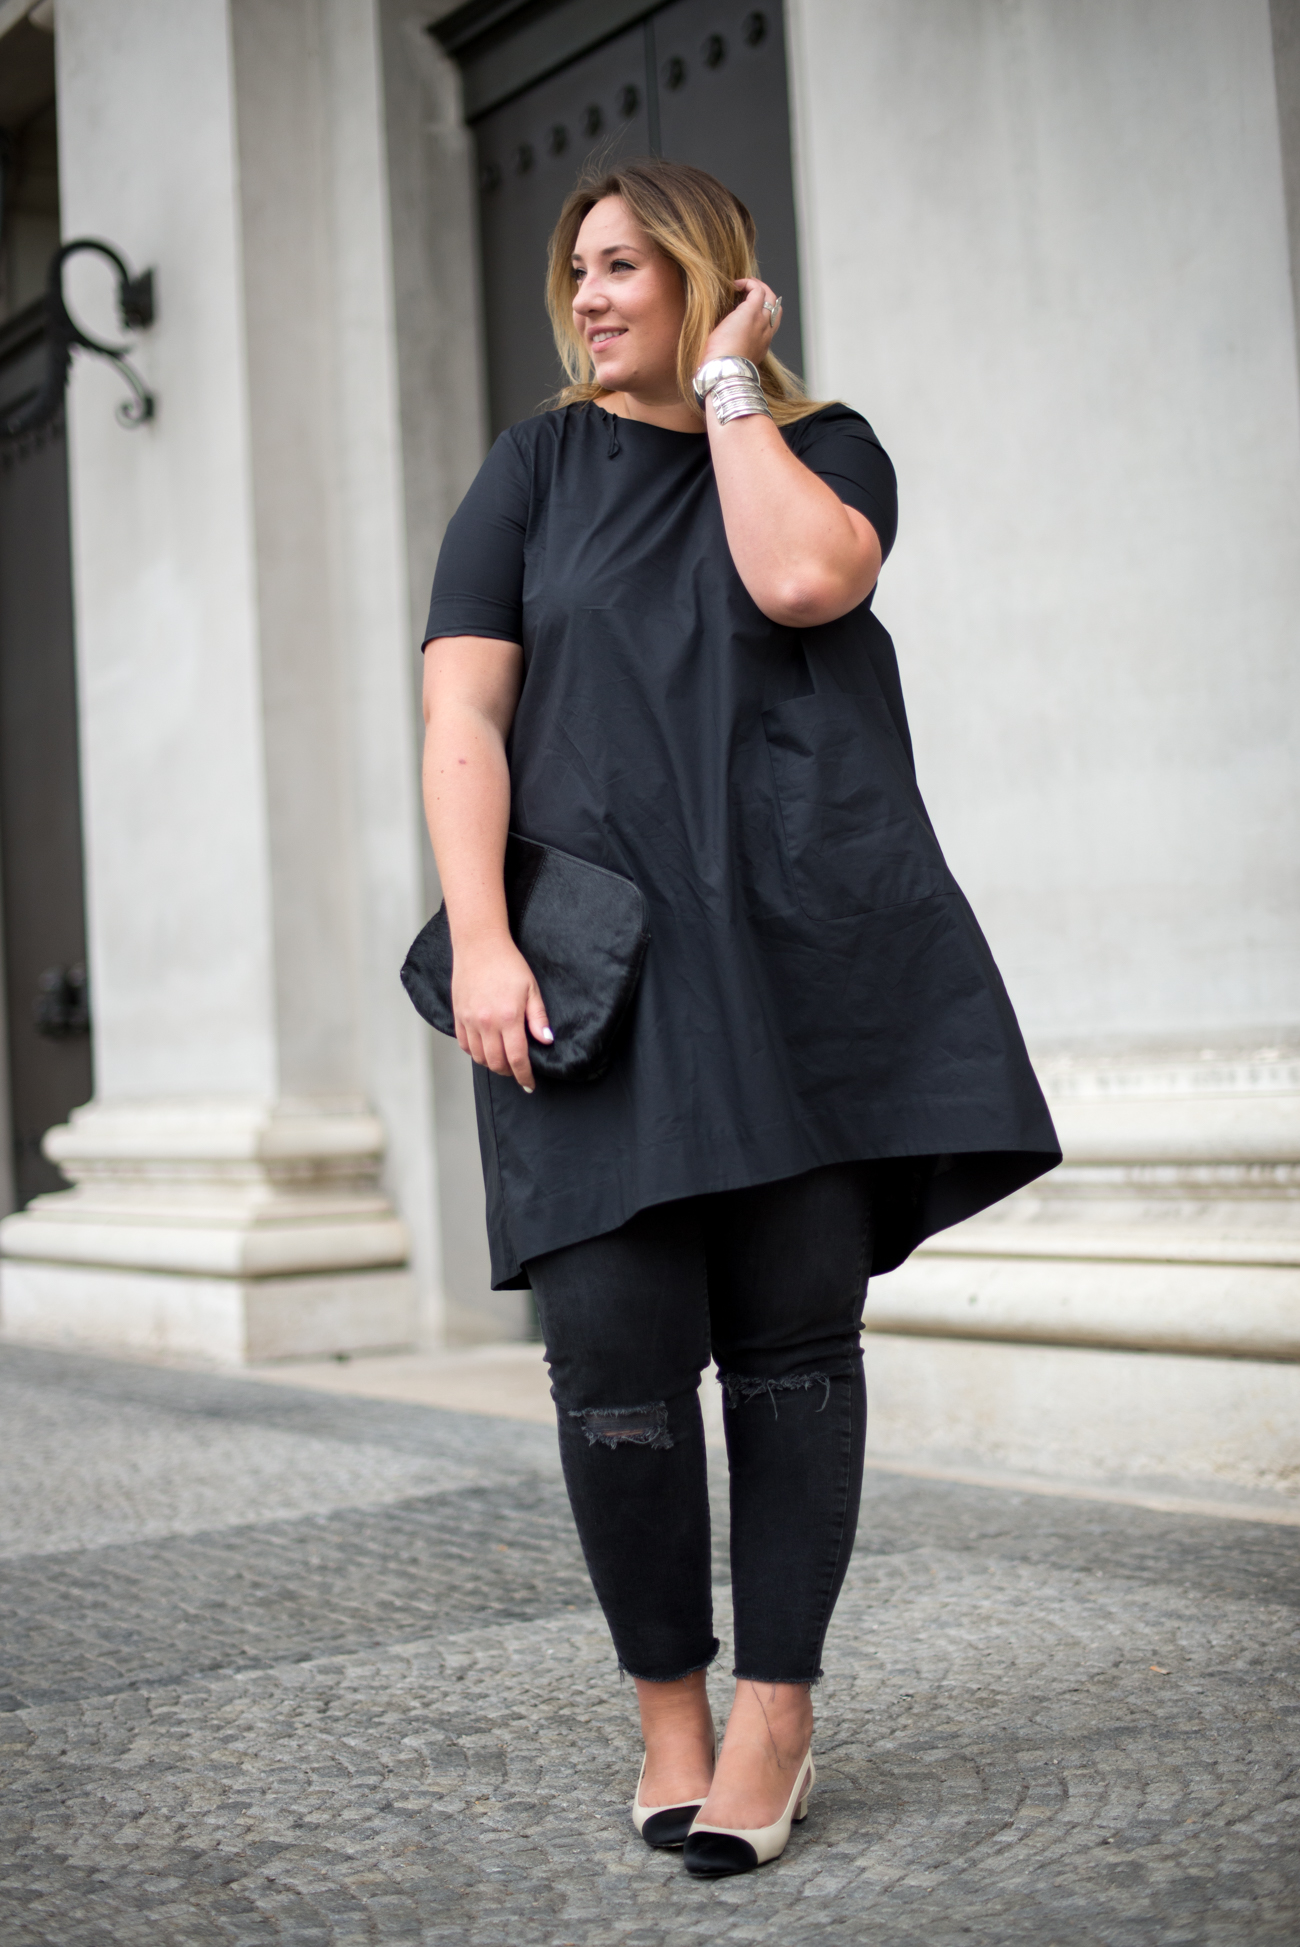 The Skinny and the Curvy One_Plussize_Plus Size Deutschland_Plus Size München_Plus Size Blog_Fashion (1 von 2)